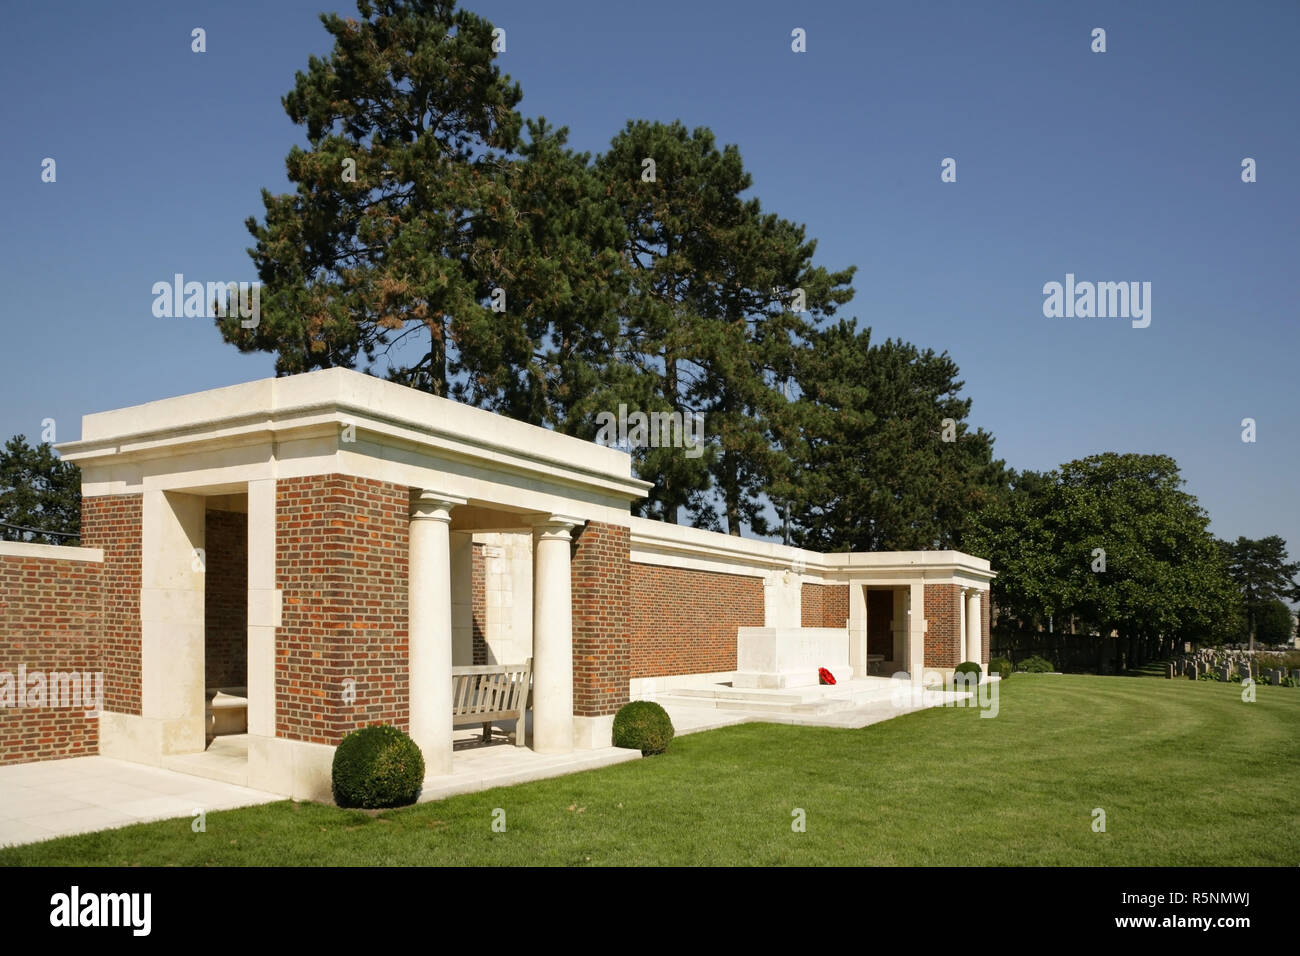 The allied St Sever Cemetery Extension, Rouen, France. - Stock Image